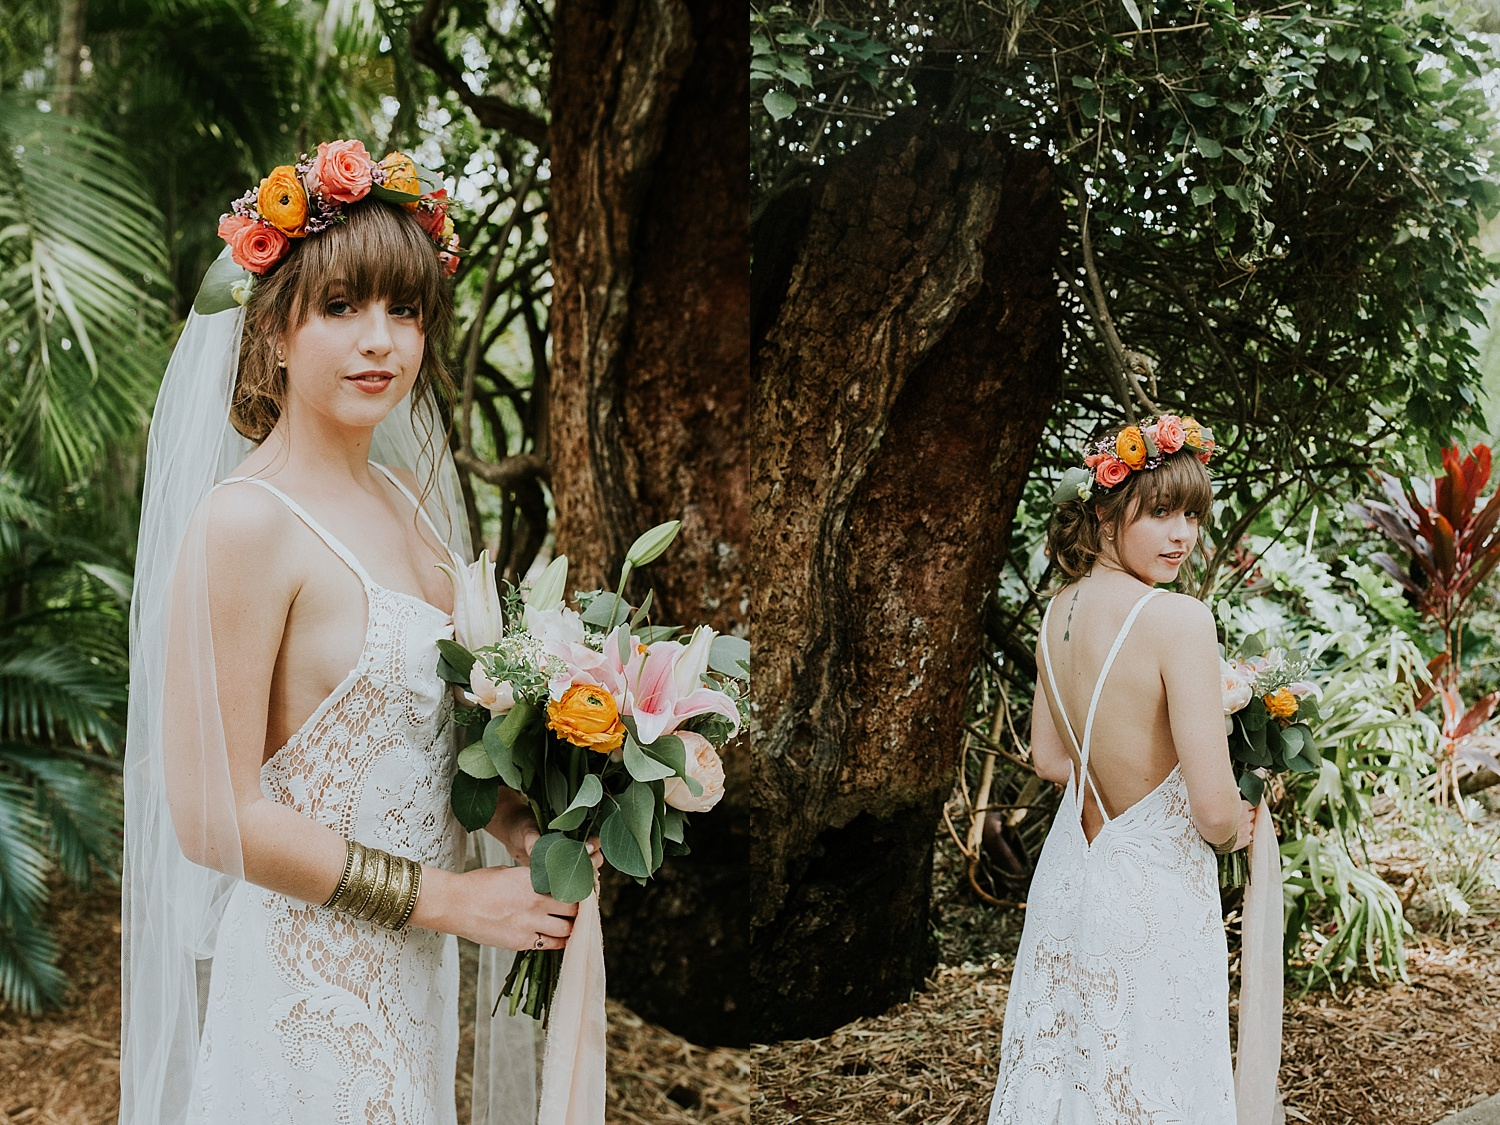 Sunken Garden Wedding Photos, Rebecca + Max, Ashley Izquierdo